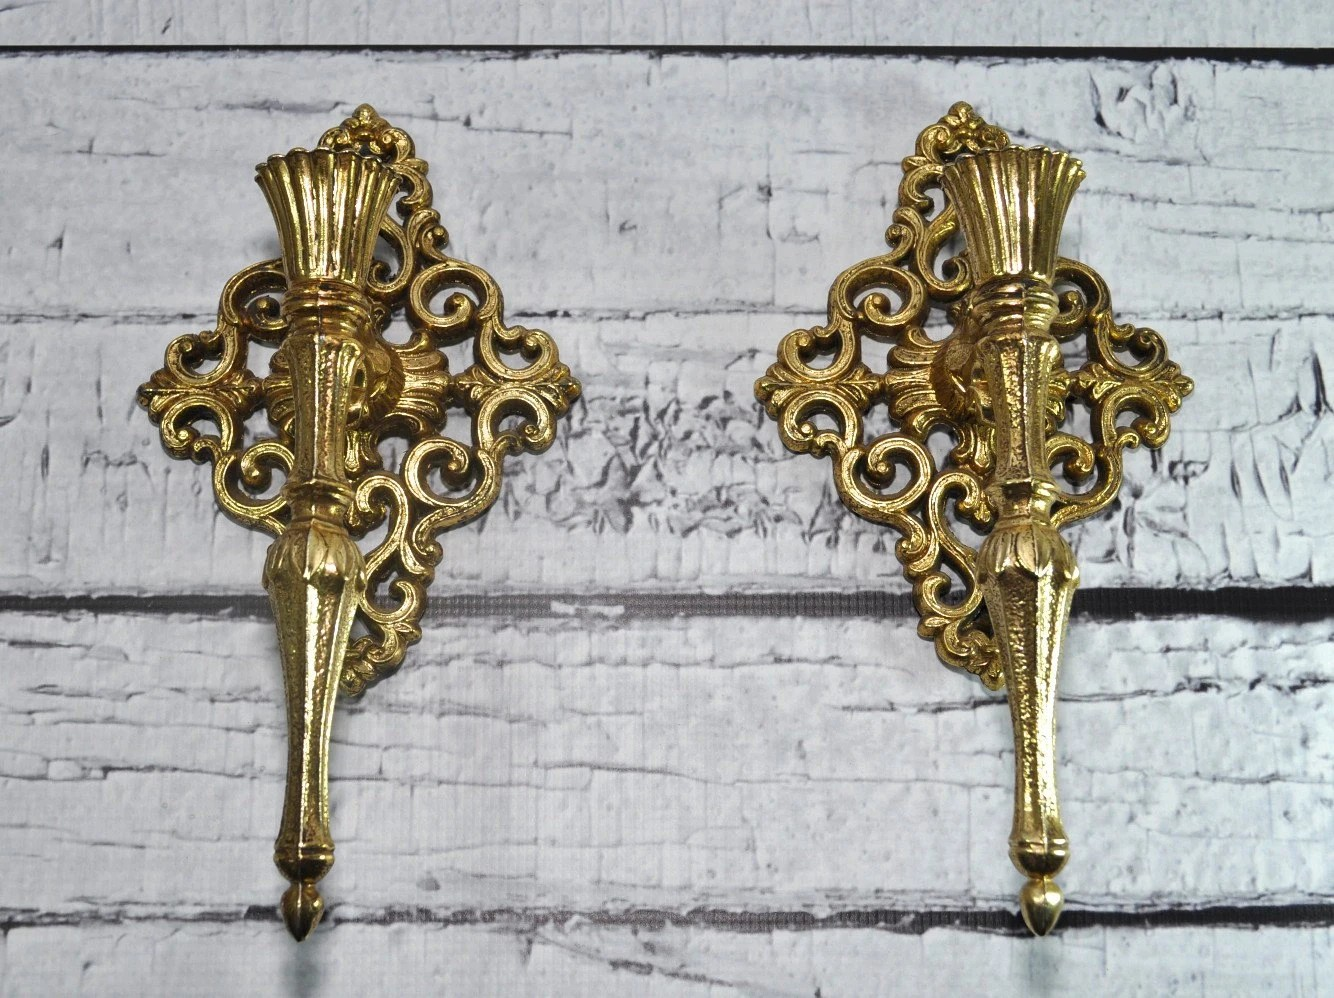 Gold Candle Wall Sconces - Kids Art Decorating Ideas on Vintage Wall Sconce Candle Holder Decorating Ideas id=37856